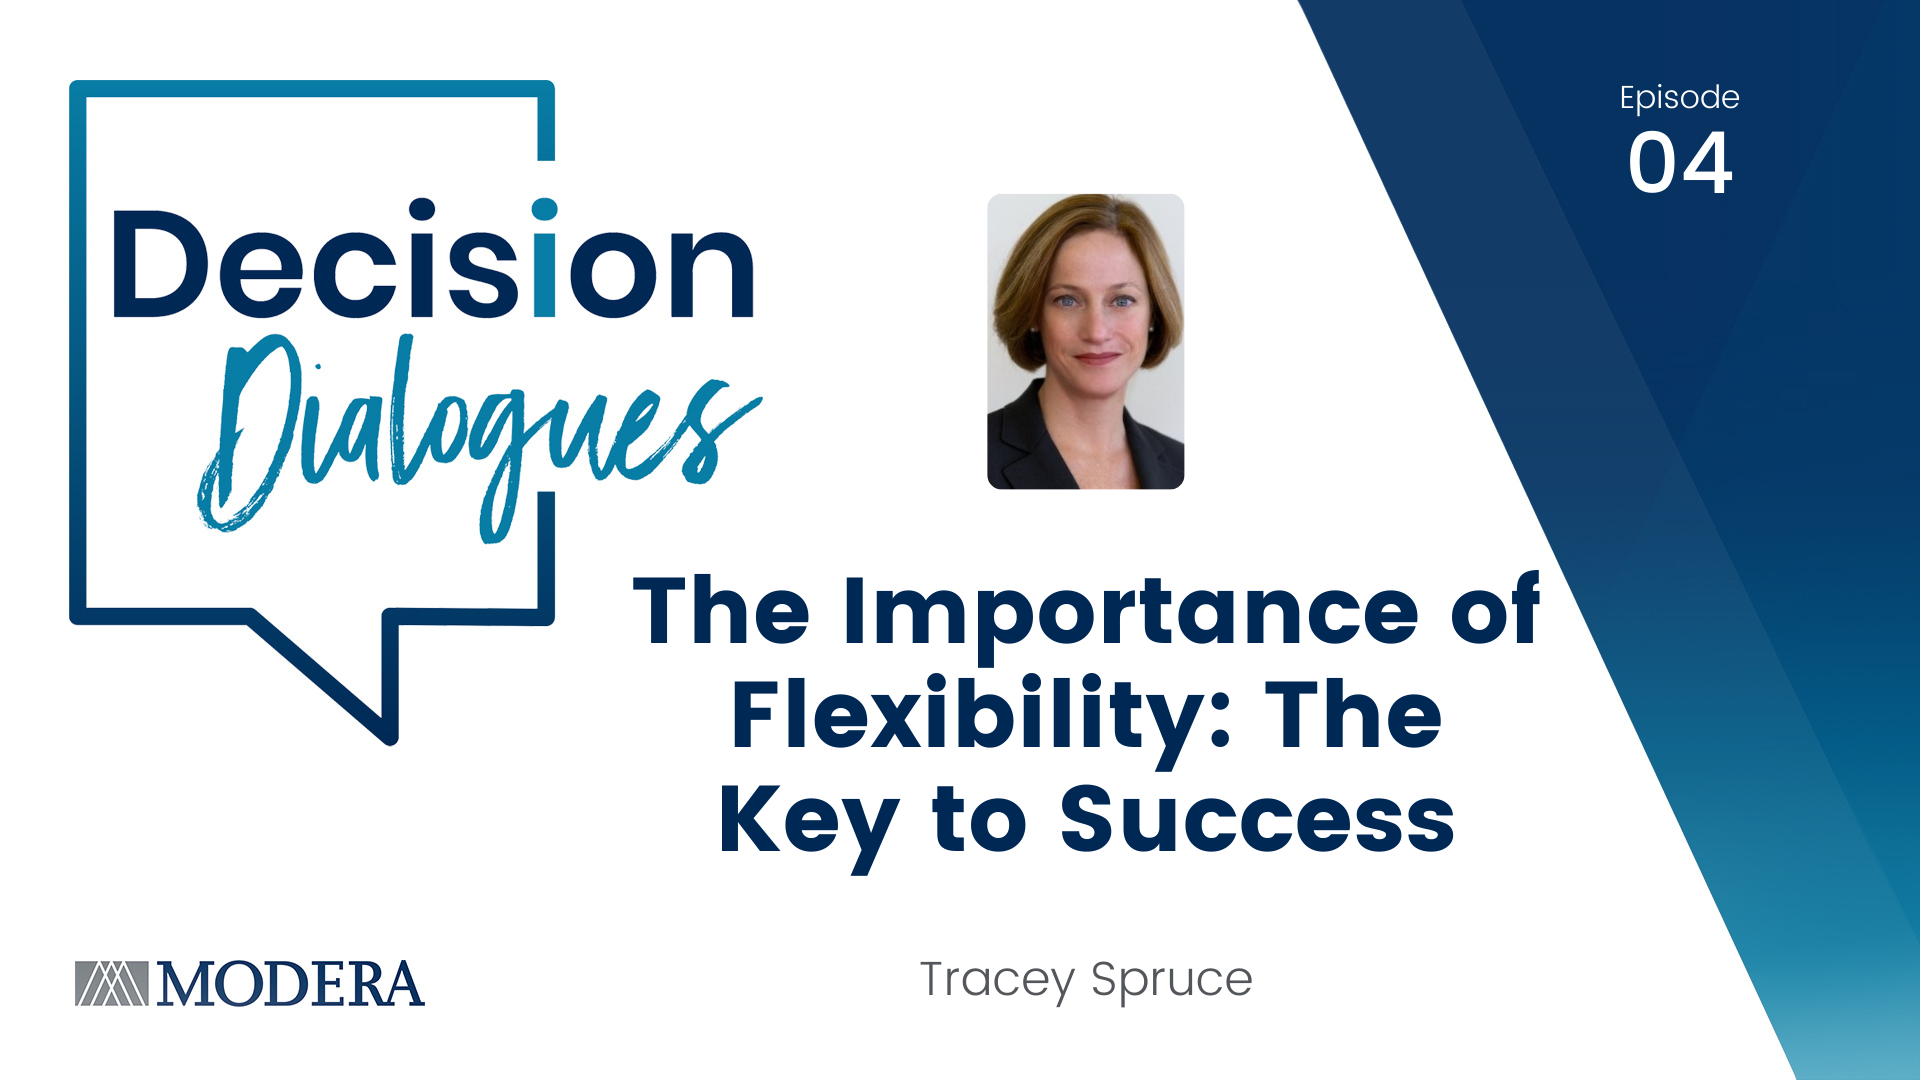 Decision Dialogues Episode 04 - The Importance of Flexibility: The Key to Success - Tracey Spruce